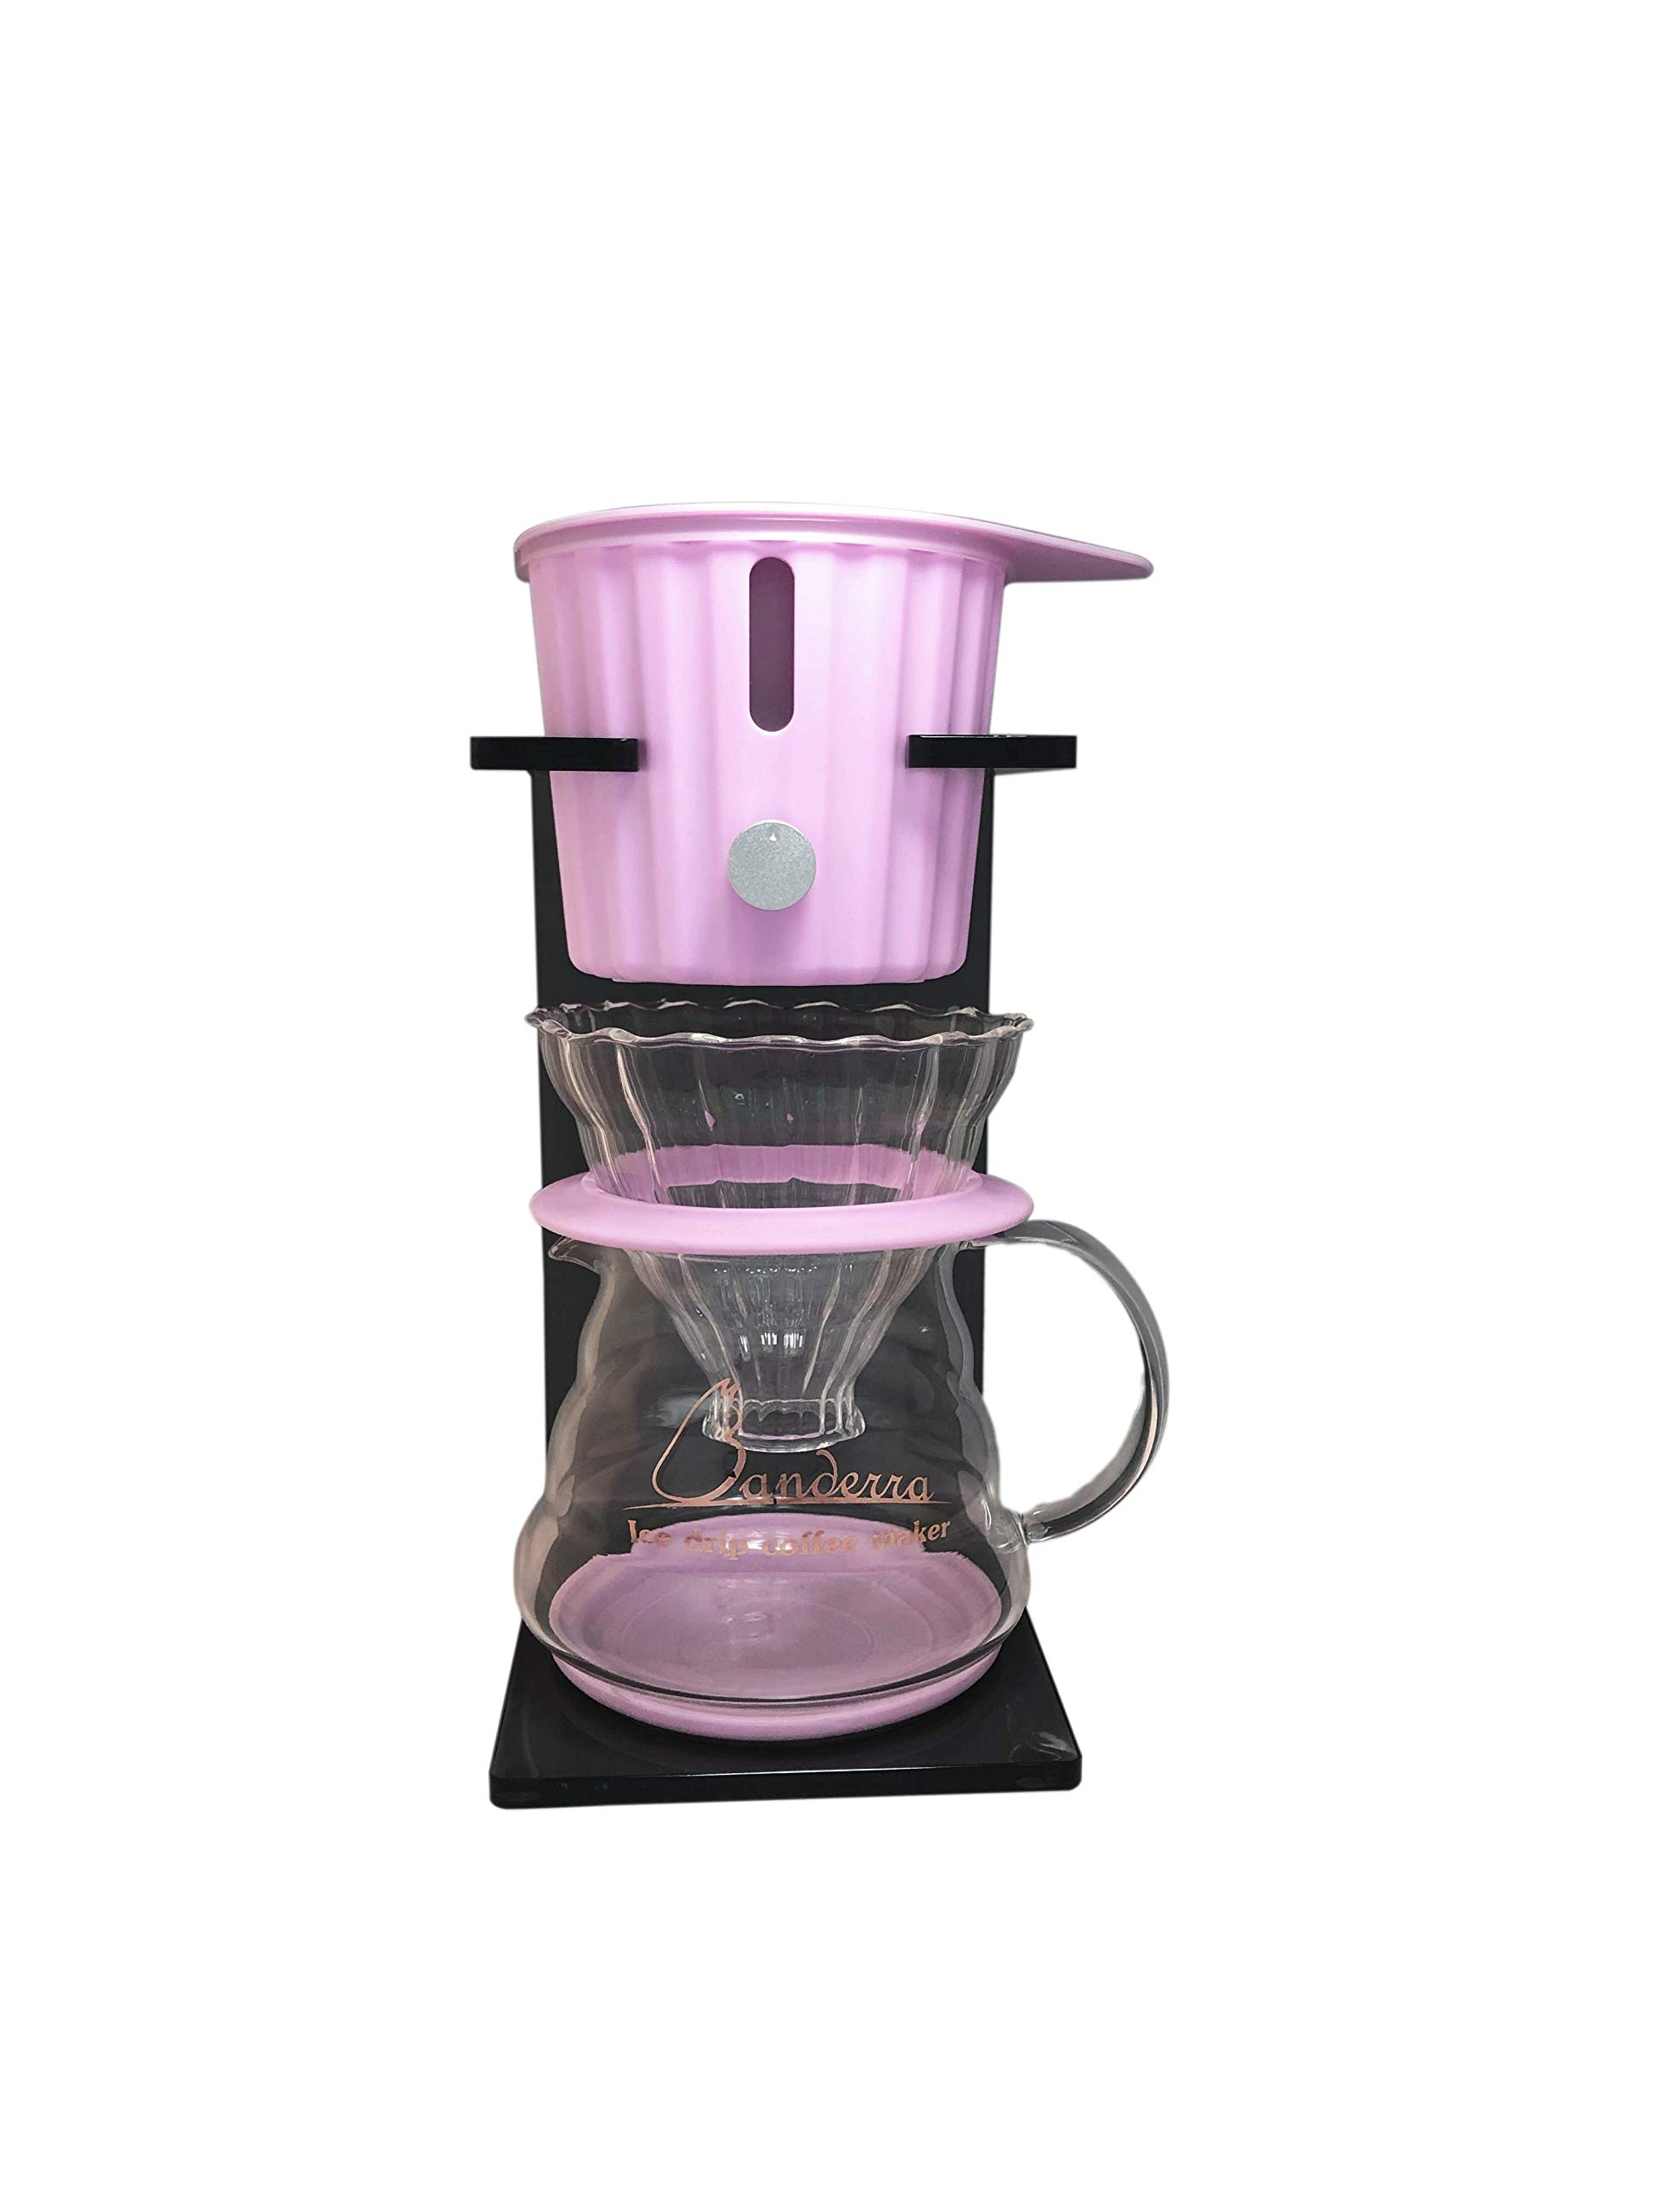 Banderra Ice Coffee Dripper Ice Drip Coffee Maker Cold Brew Iced Coffee Machine (360ml) 5V/2A USB (Pink)